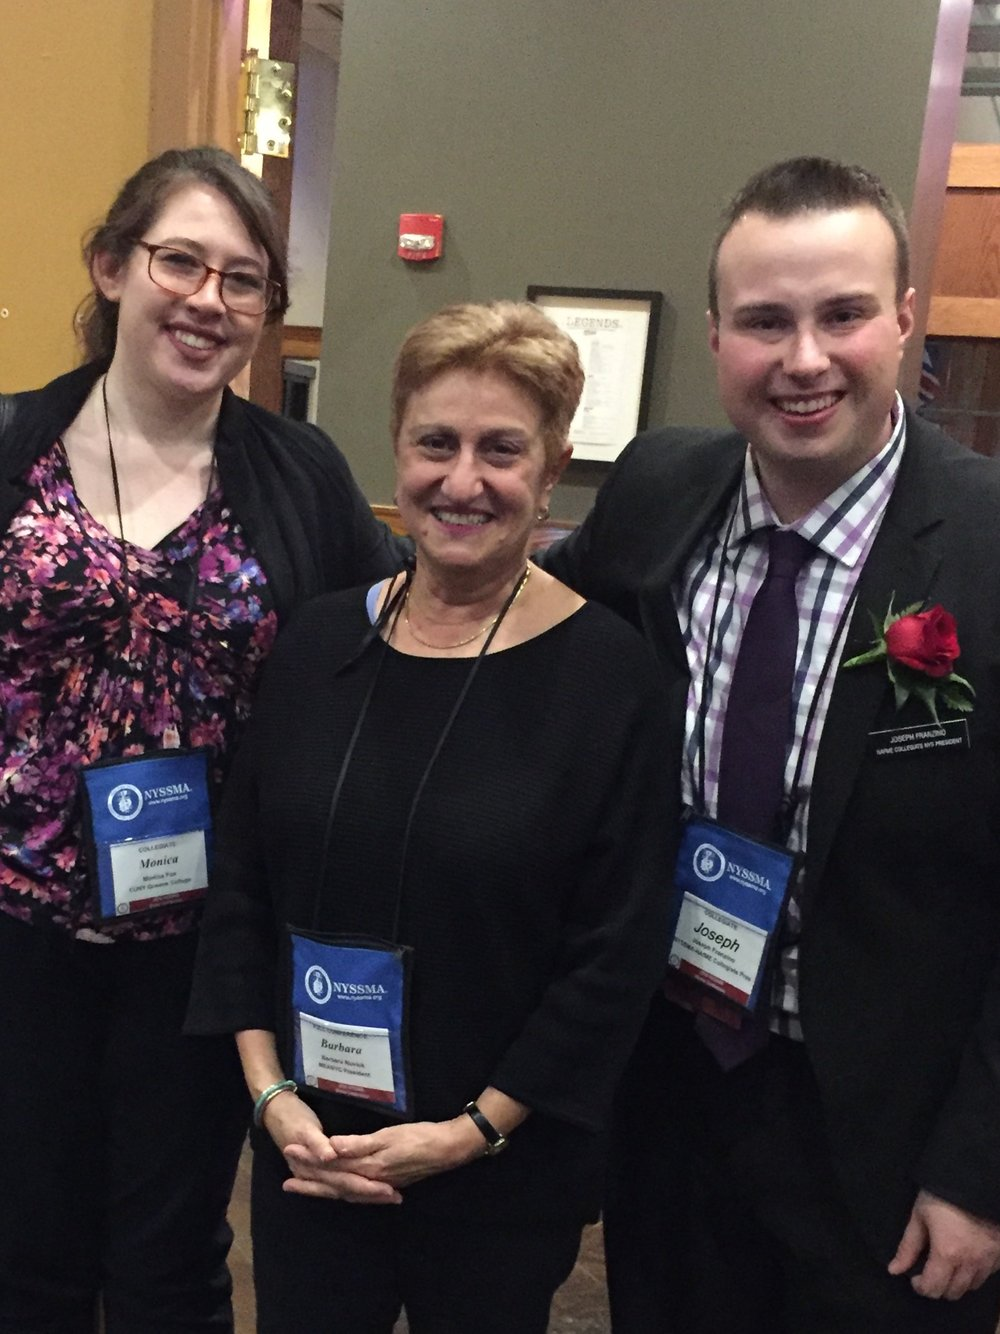 Monica Fox-NAfME/NYSSMA Province 6 Collegiate Representative, Barbara Novick-MEANYC President, and Joseph Franzino-NAfME/NYSSMA Collegiate President at Winter Conference 2016.